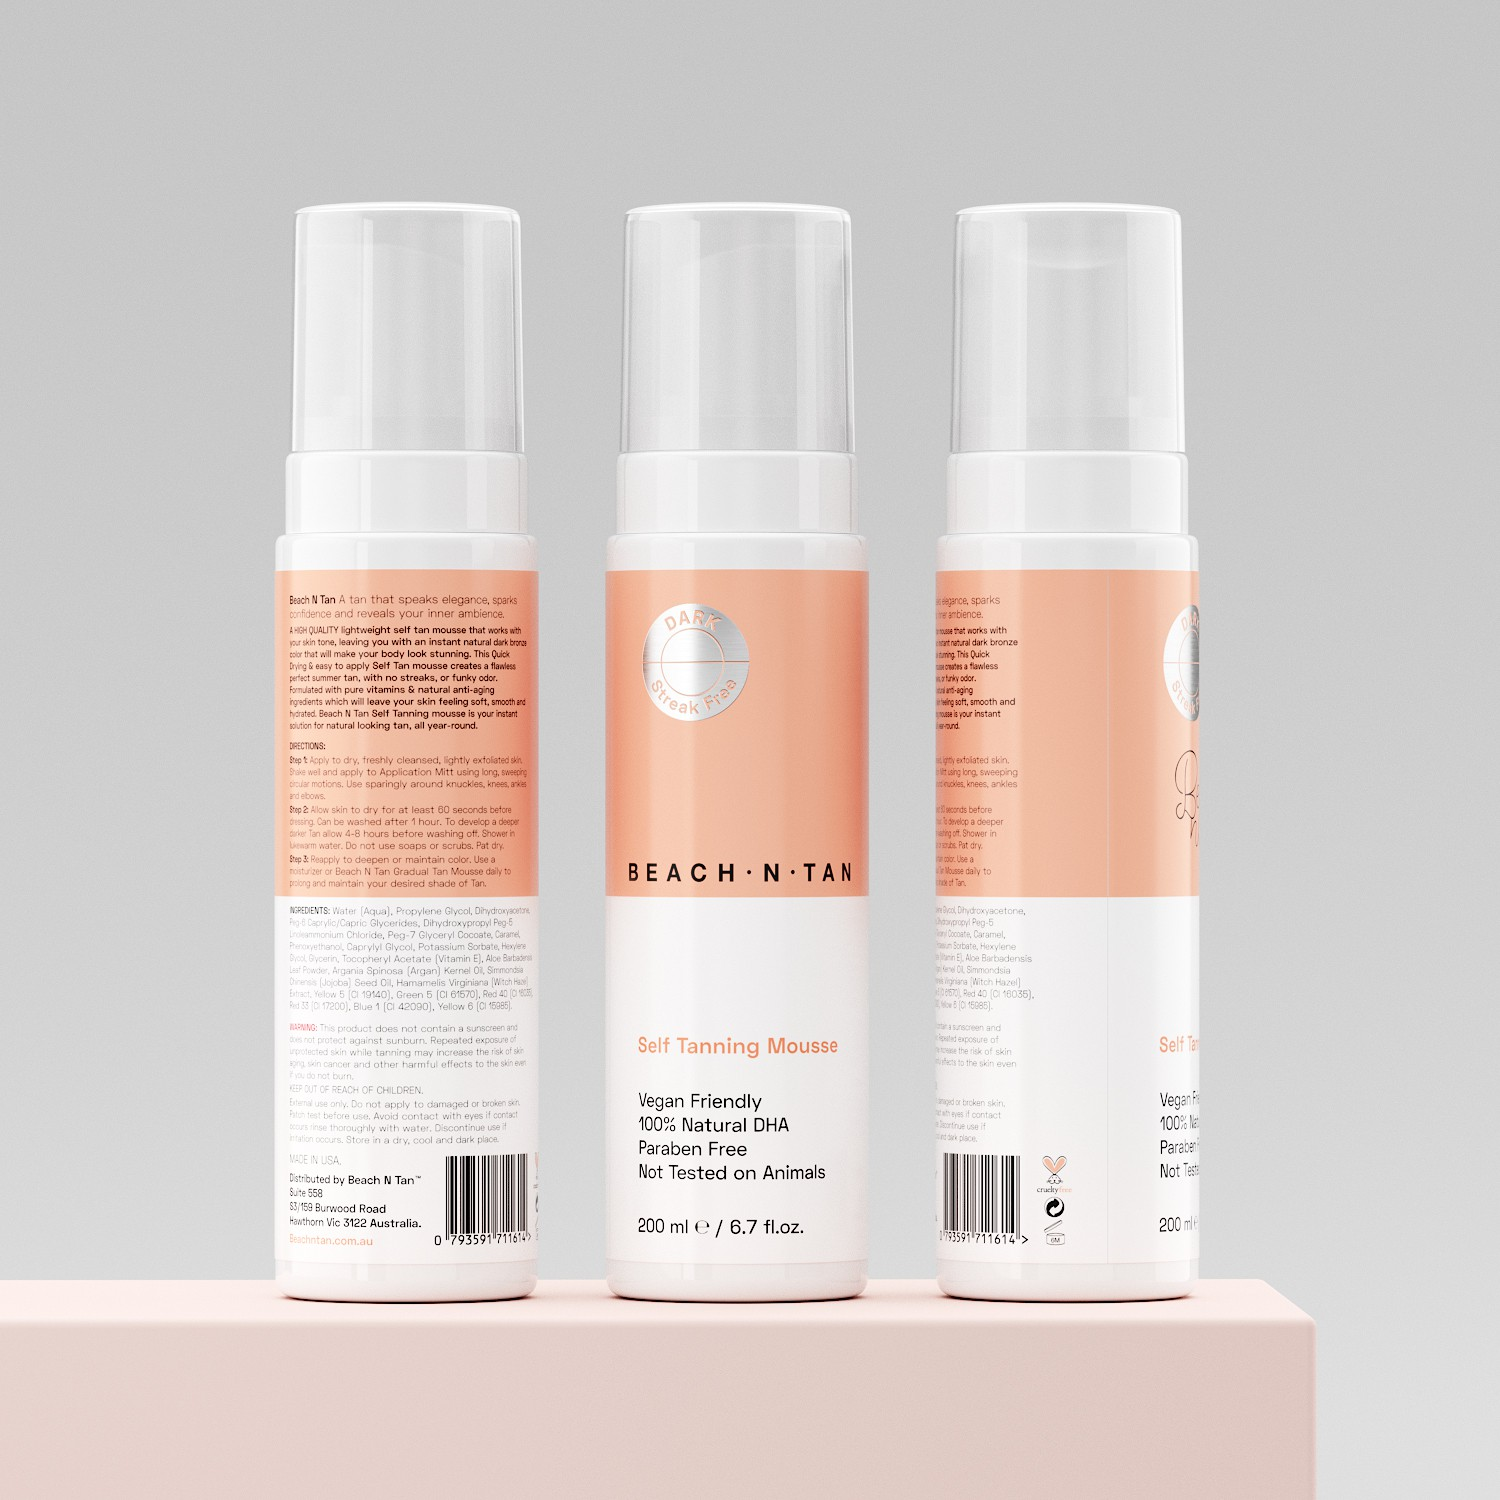 Design a clean and catchy label design for a tanning foam